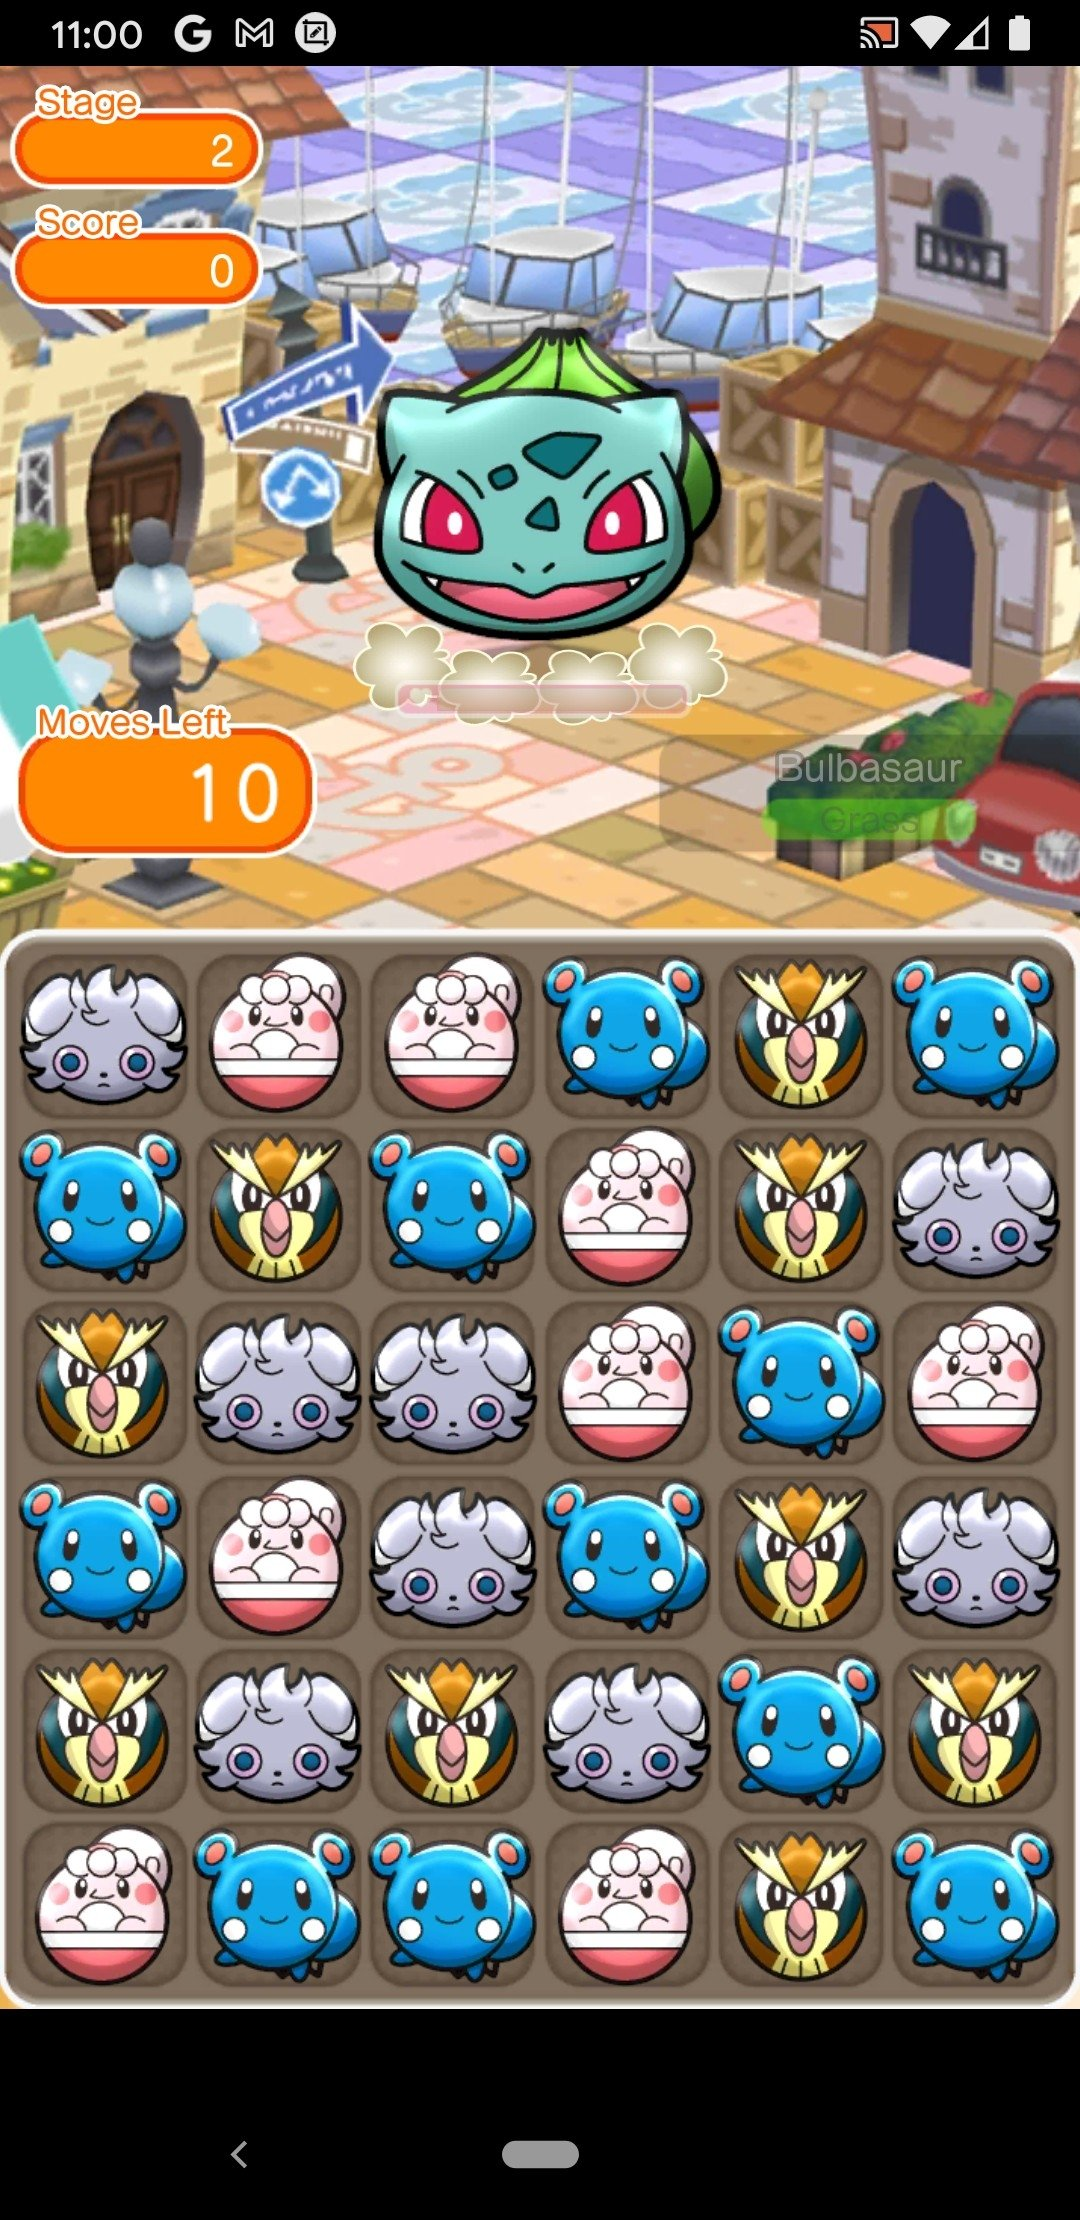 Pokémon Shuffle Mobile Android image 6